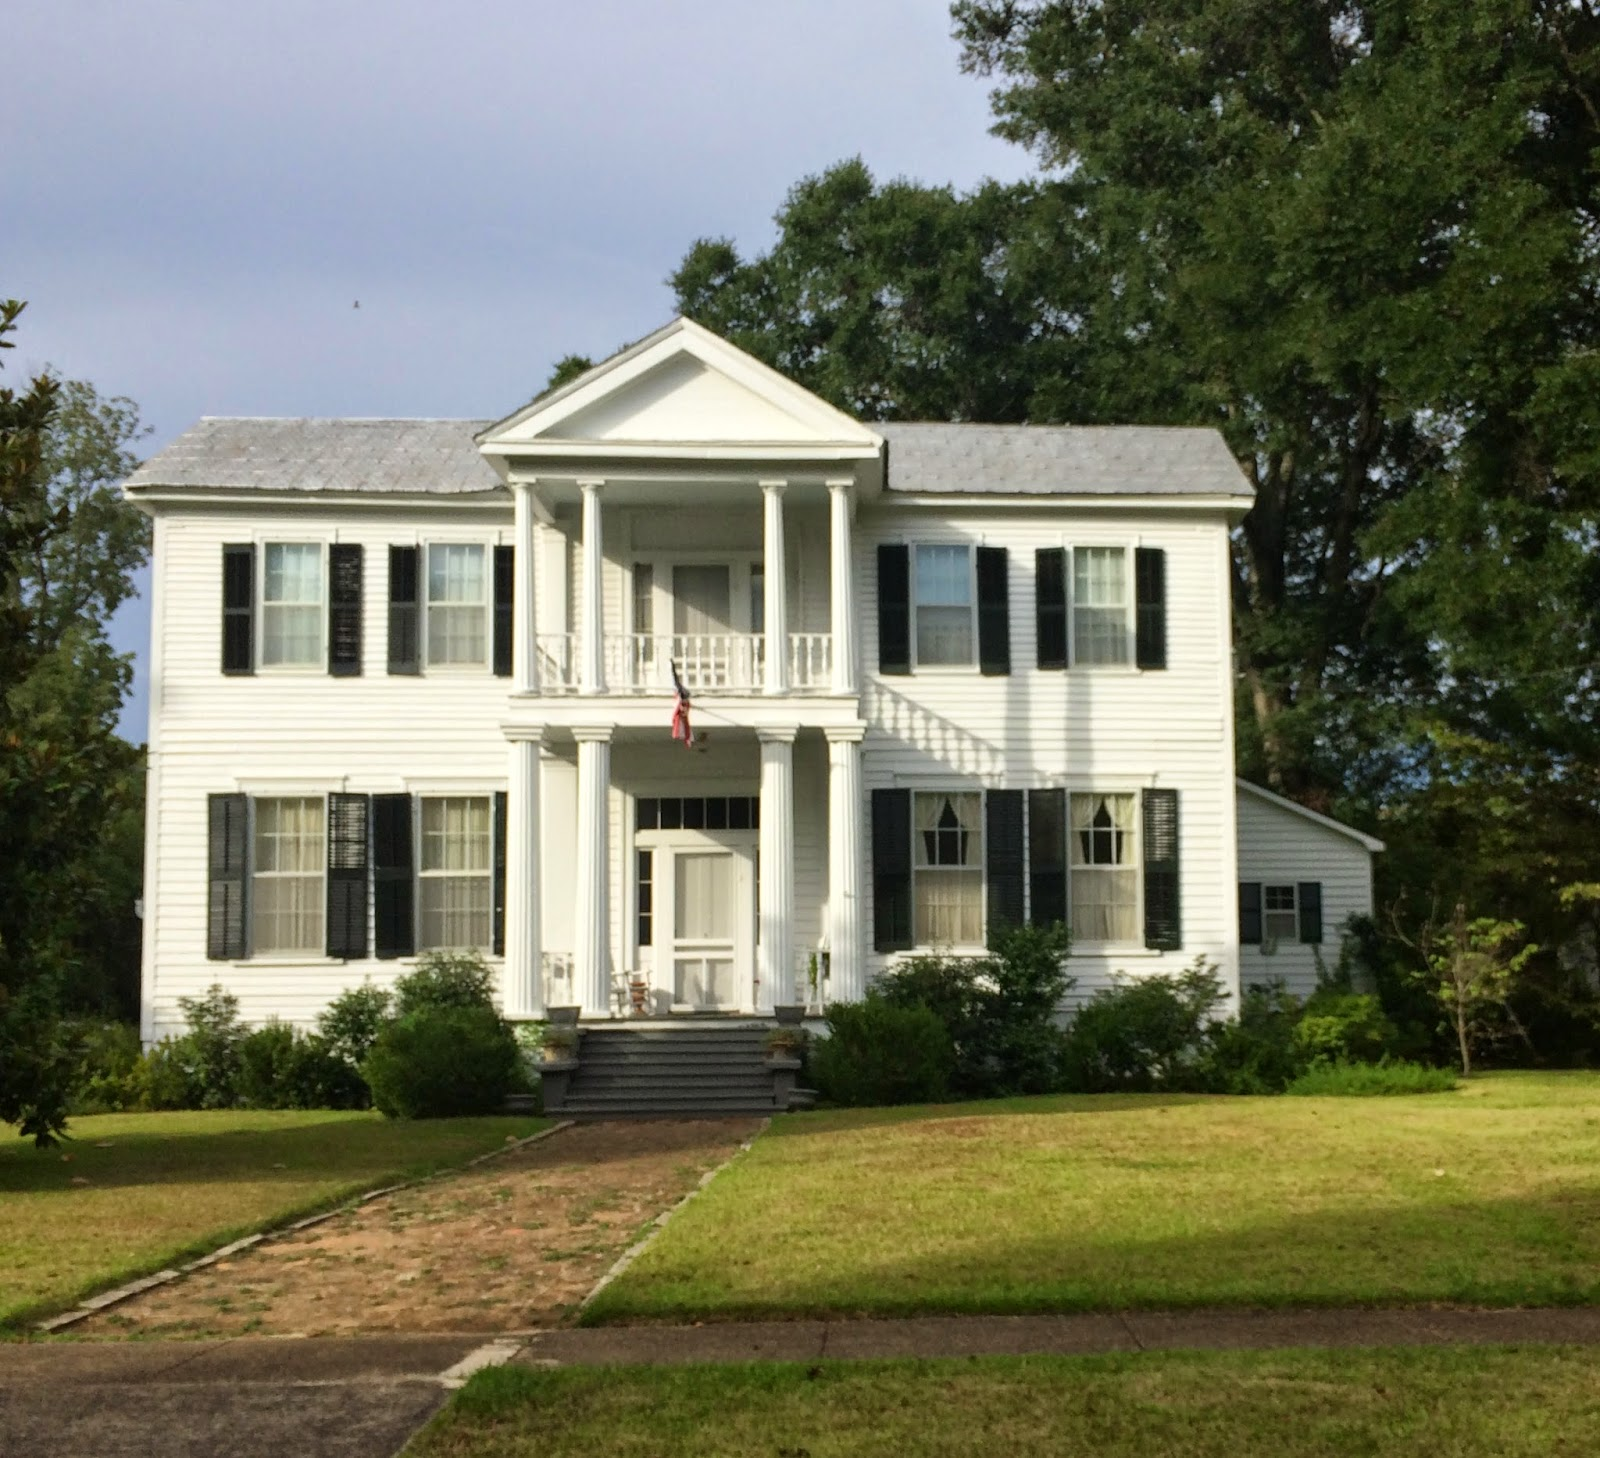 Several Homes Of This Style Are Located In Livingston. While Researching  The Area, I Read Where Some Men From Connecticut And New Hampshire Came To  The Area ...